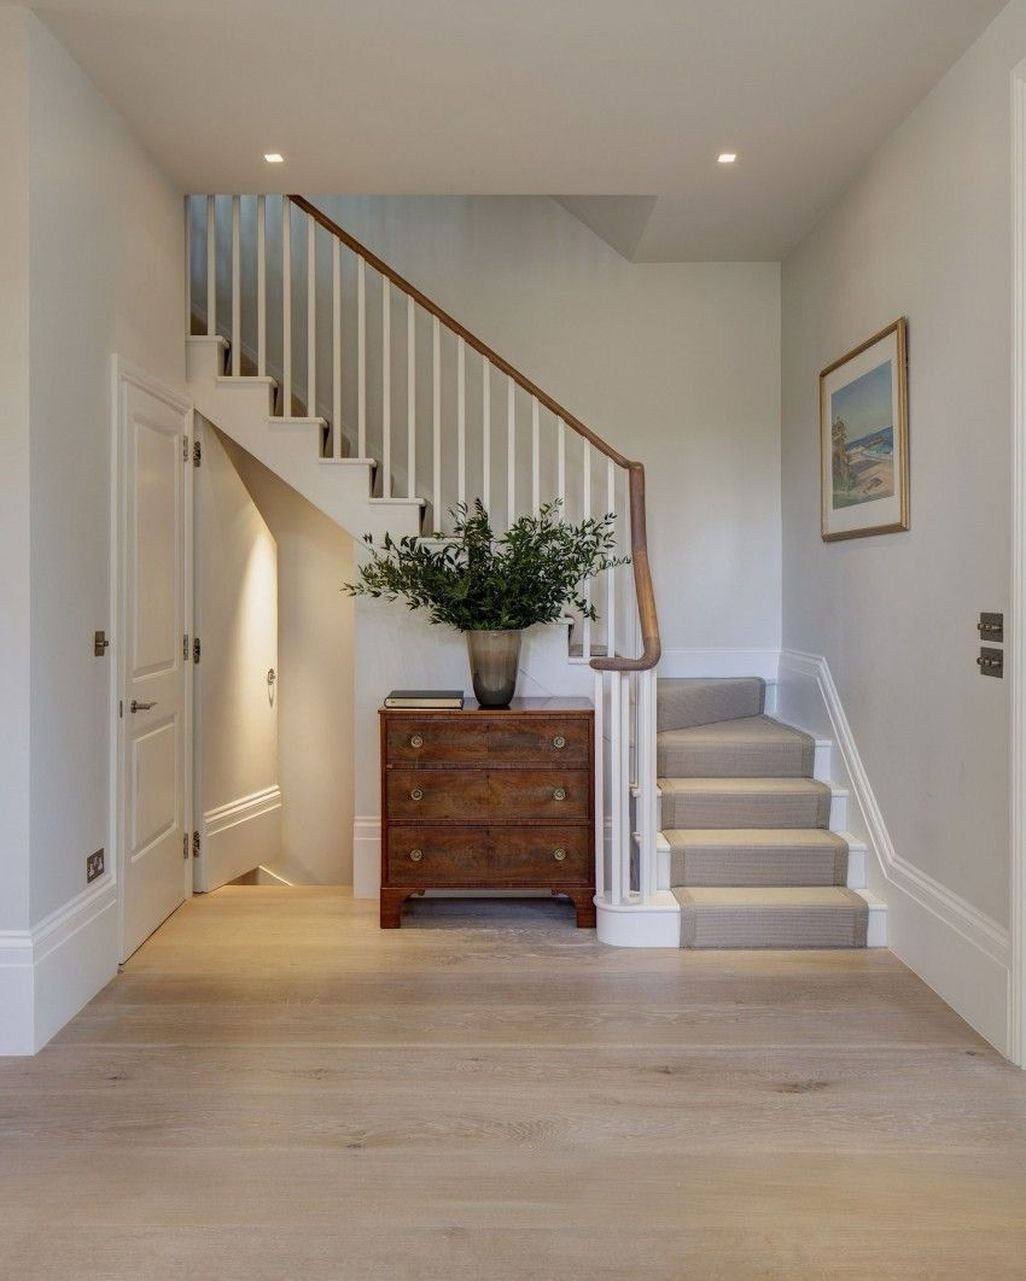 Decorating A Staircase Ideas Inspiration: 38 + Amazing Wooden Stairs Ideas For Your Home